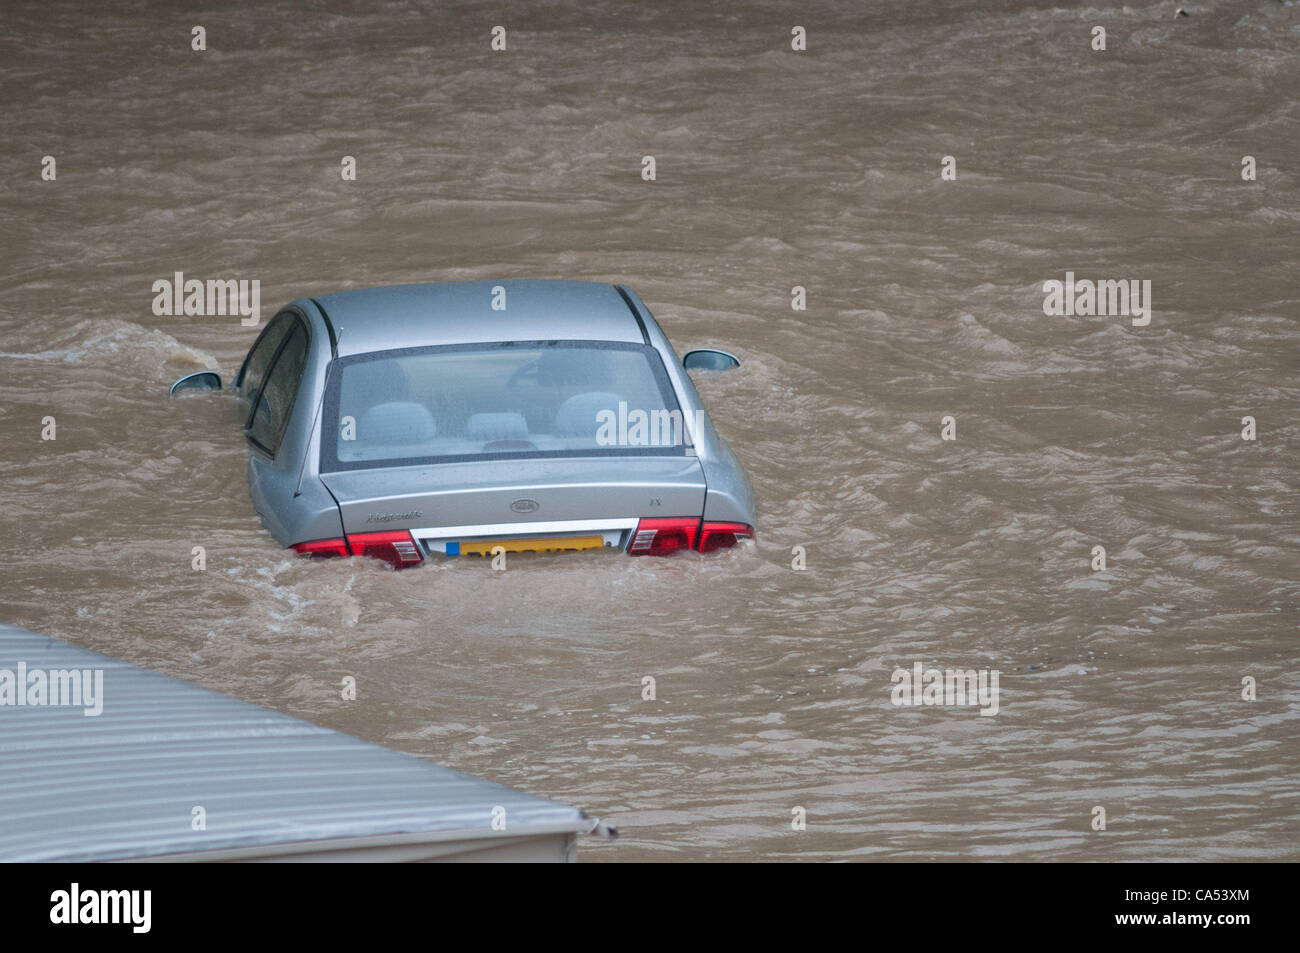 Ceredigion, Wales, UK. Saturday June 9 2012. A car is submerged by the waters of the River Leri at the Riverside - Stock Image